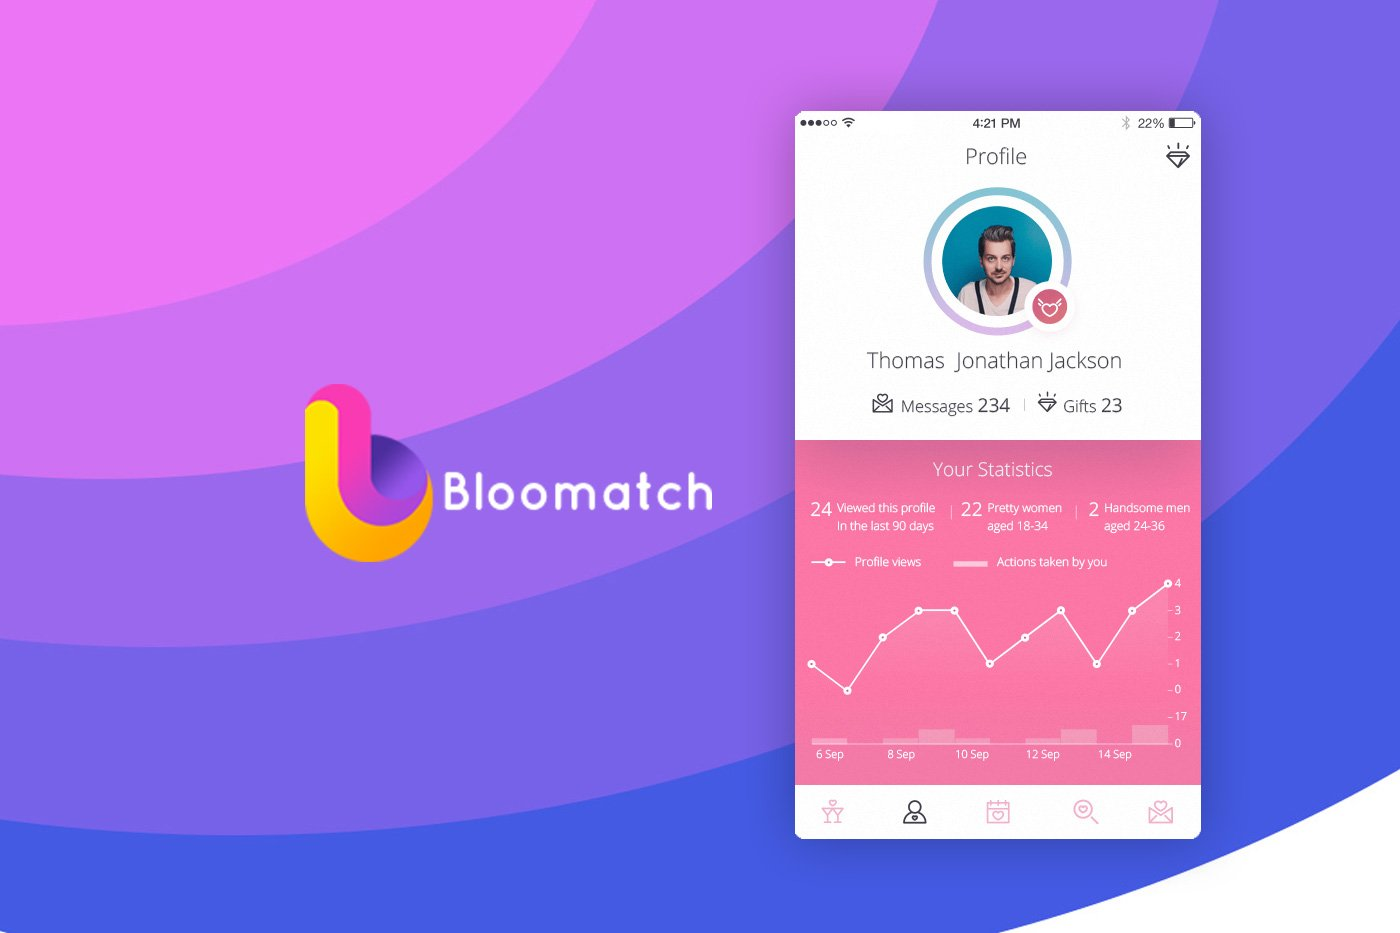 Bloomatch ICO